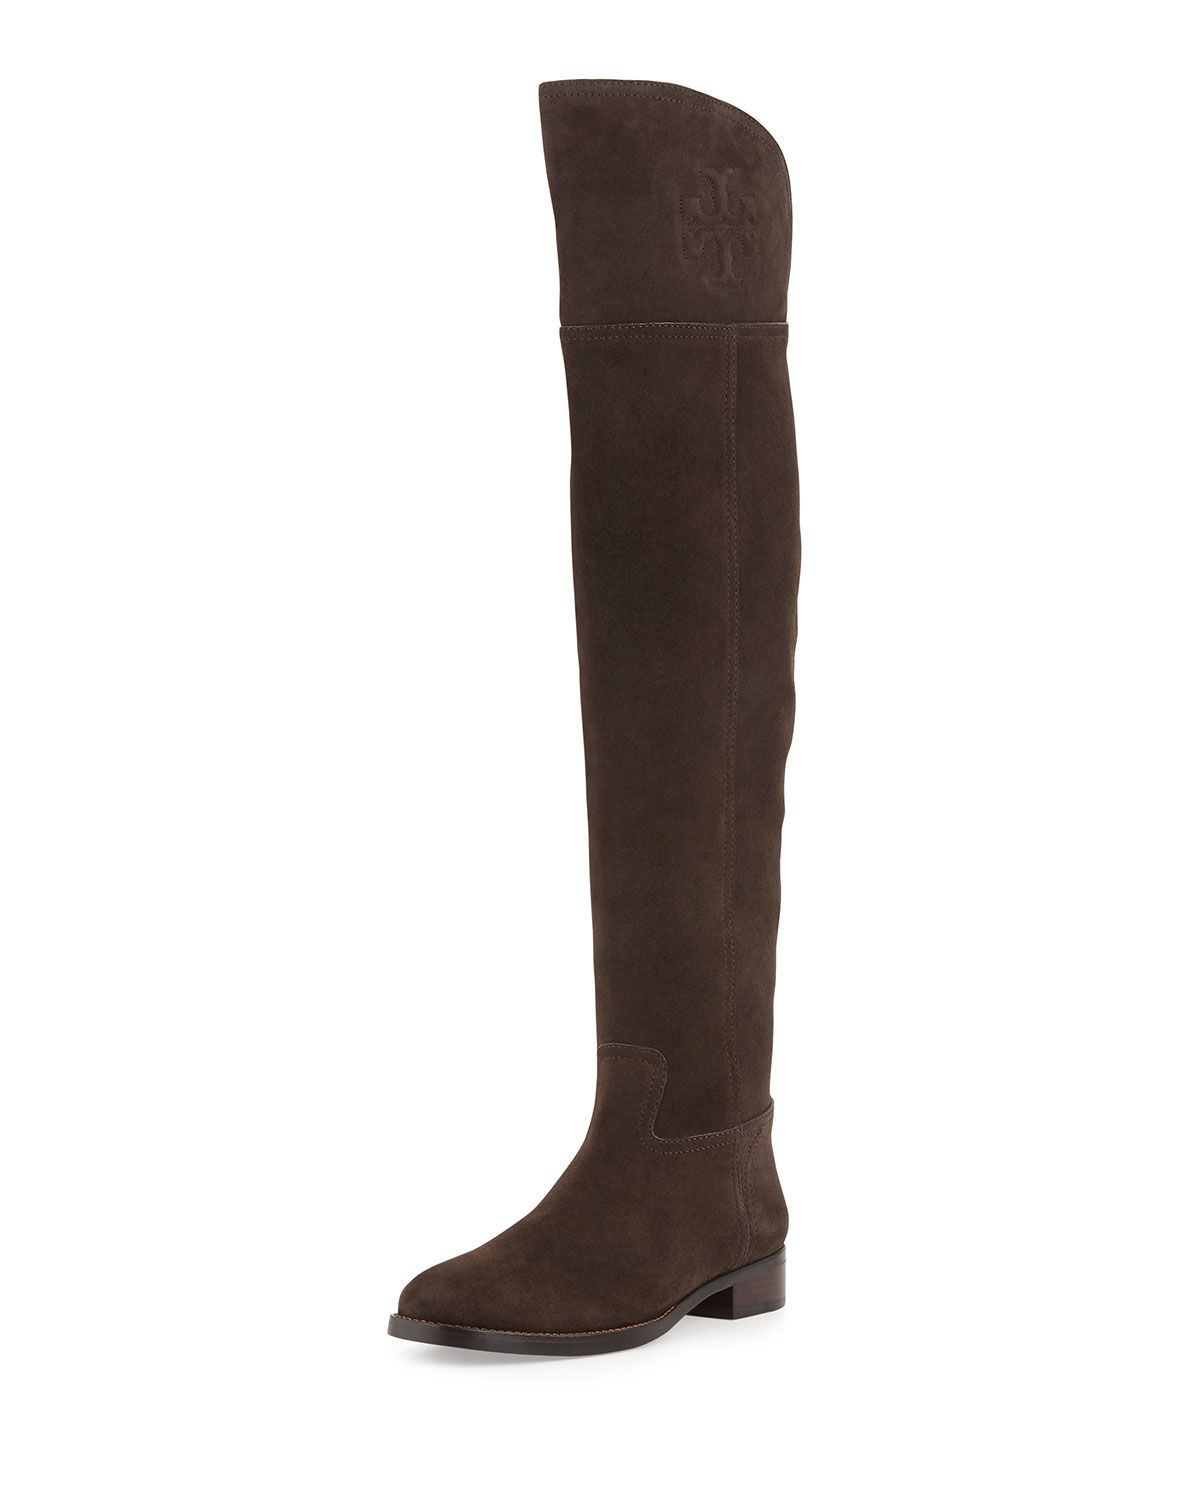 7978211fcc9 Tory Burch Simone Over-the-Knee Suede Boot